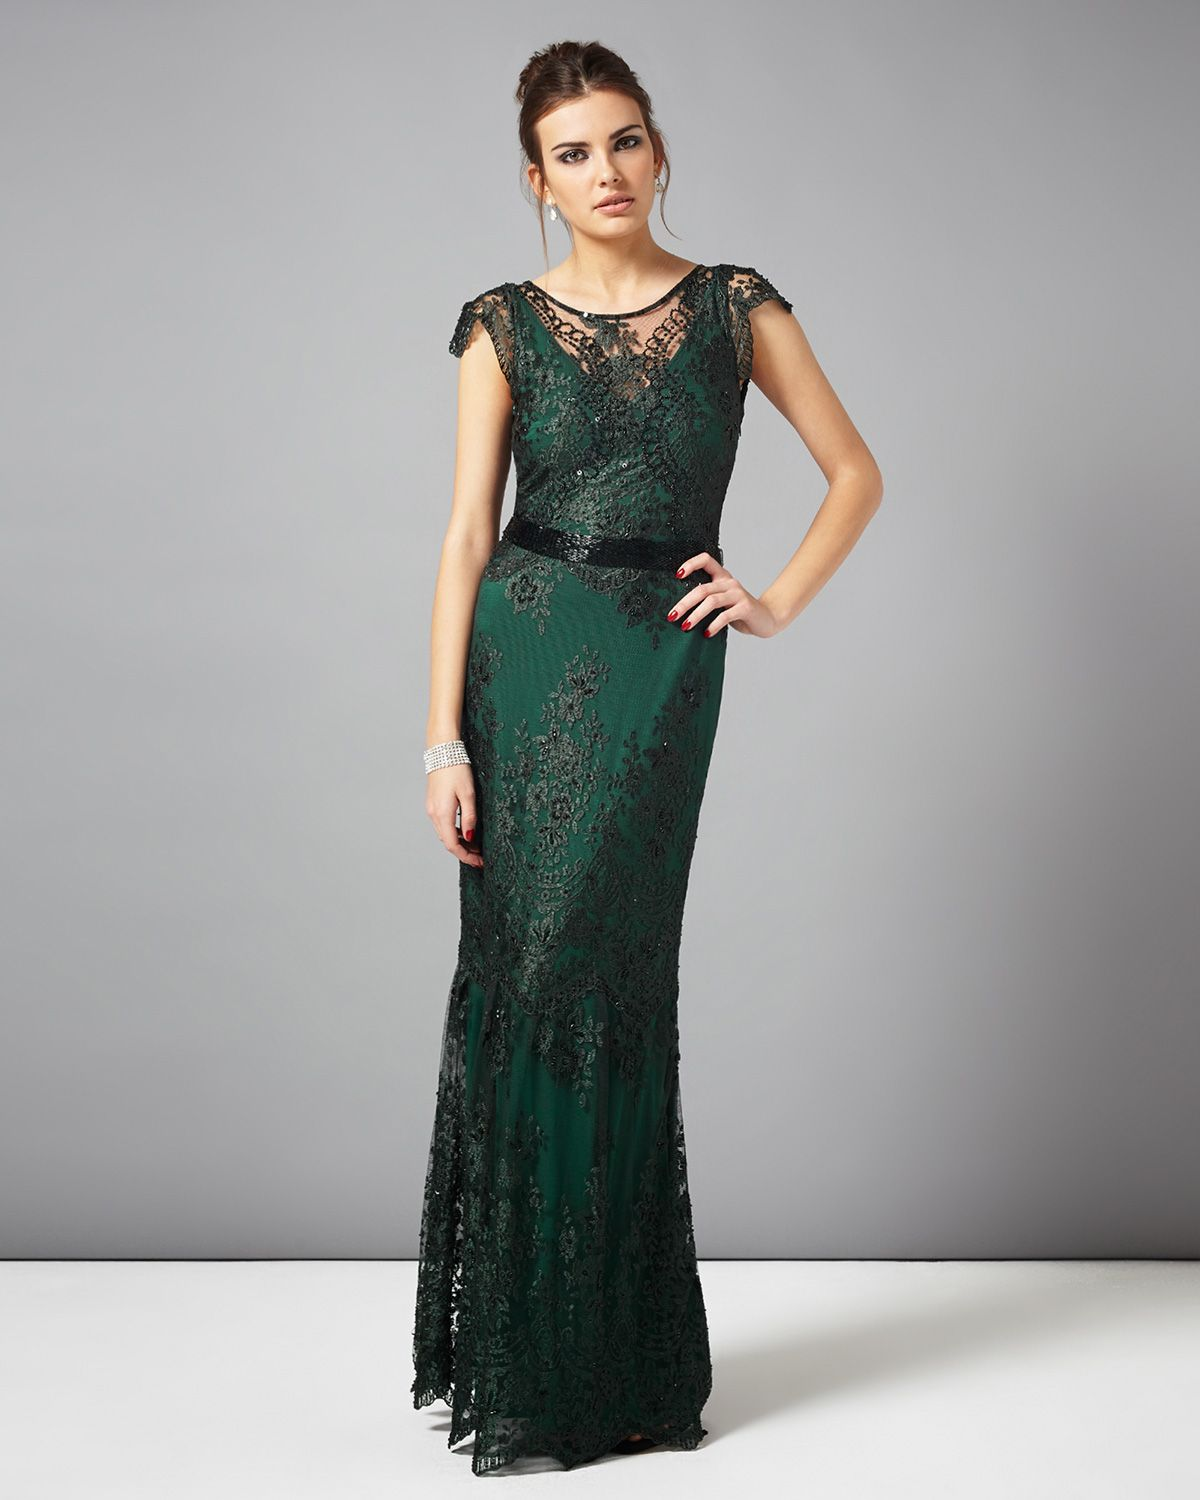 3f2b88dc8614 collection 8 dresses | Green Cindy Lace Full Length Dress | Phase Eight